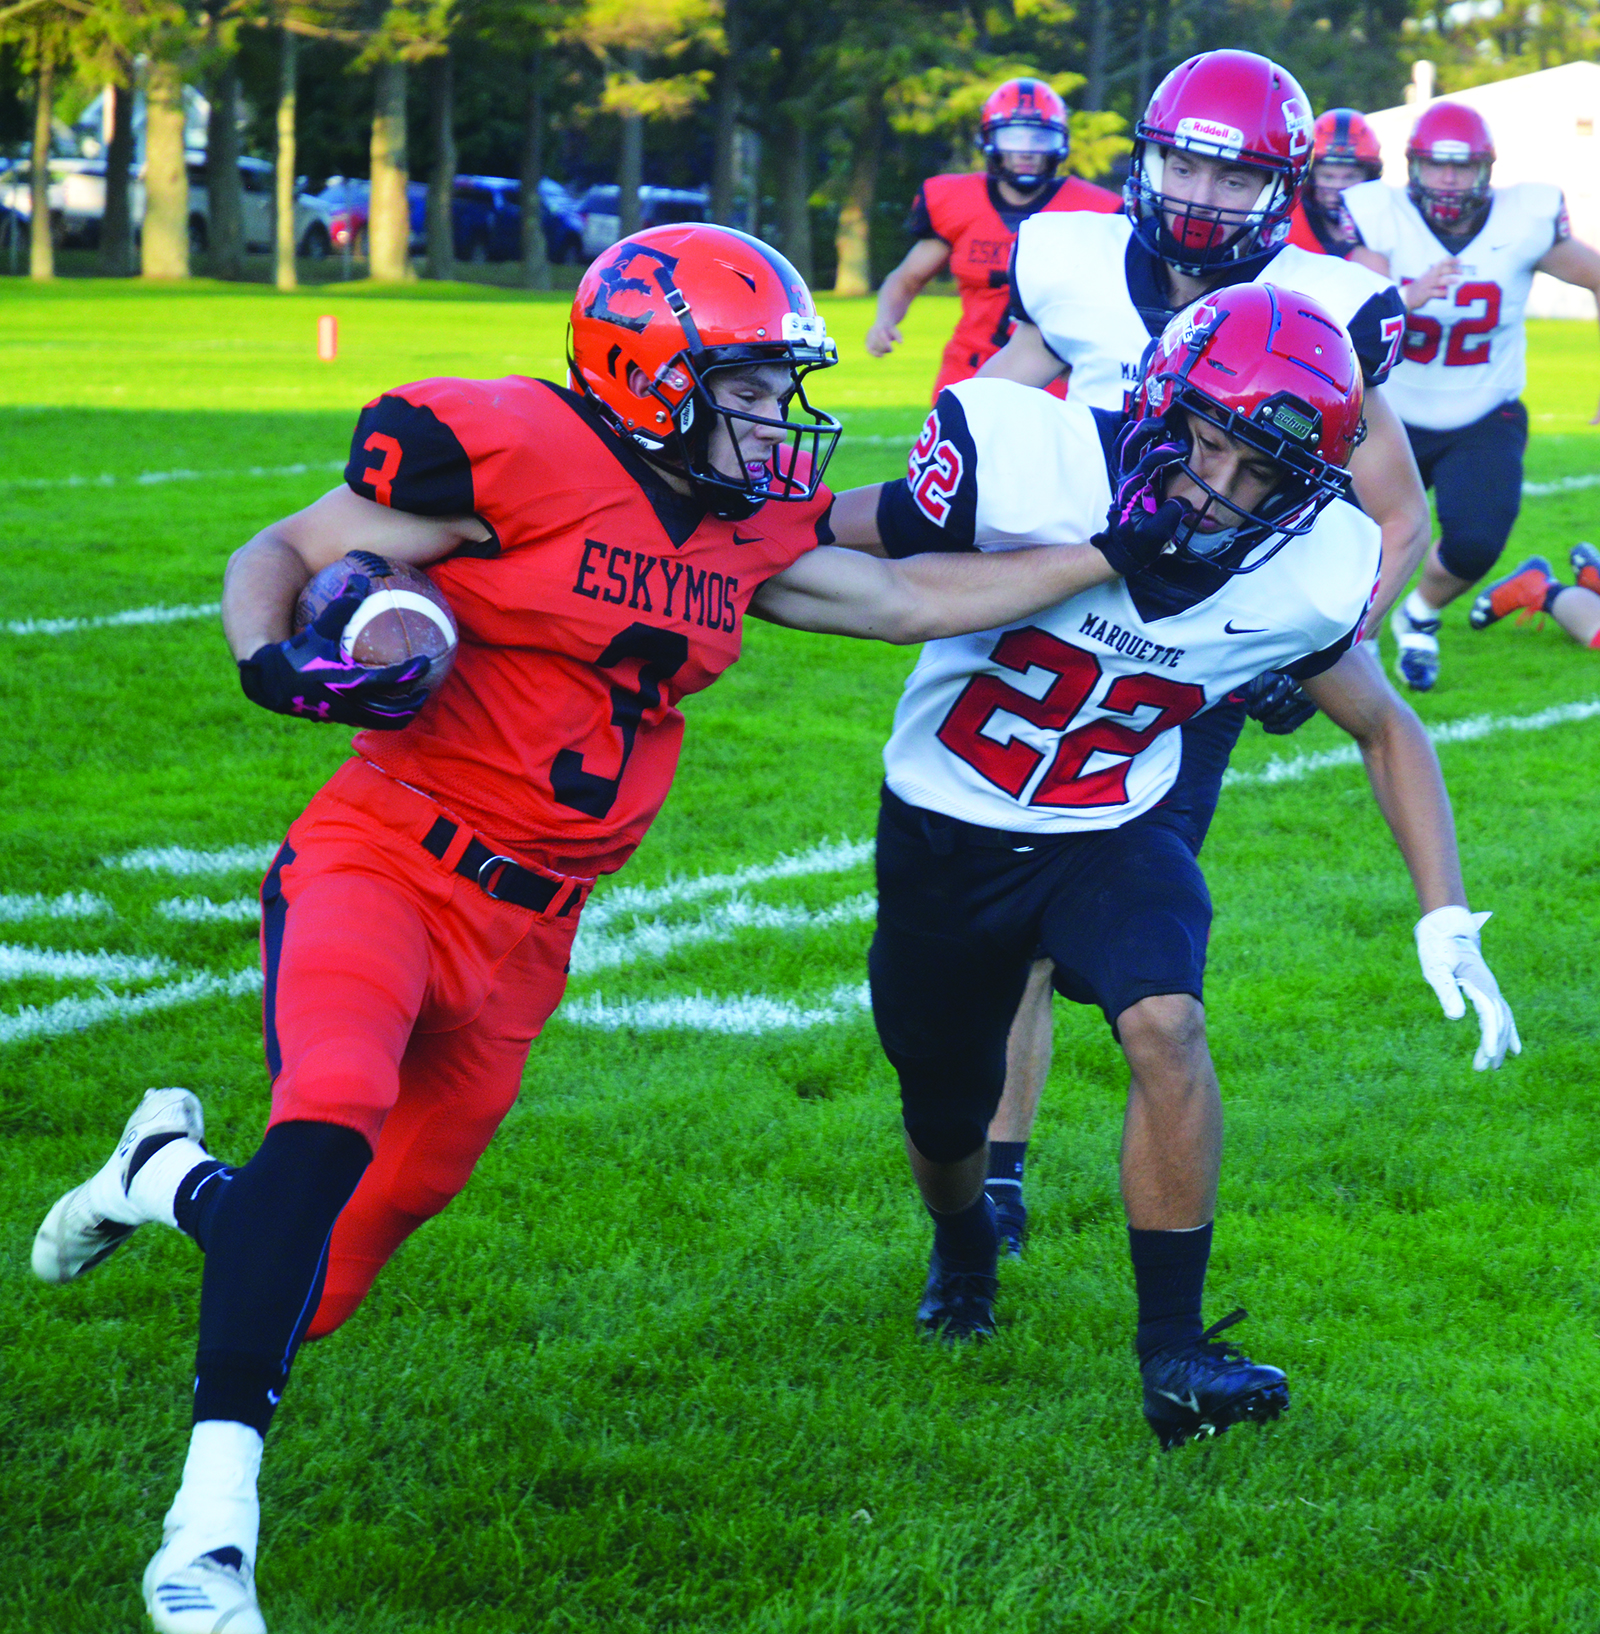 Esky Homecoming Game Suspended